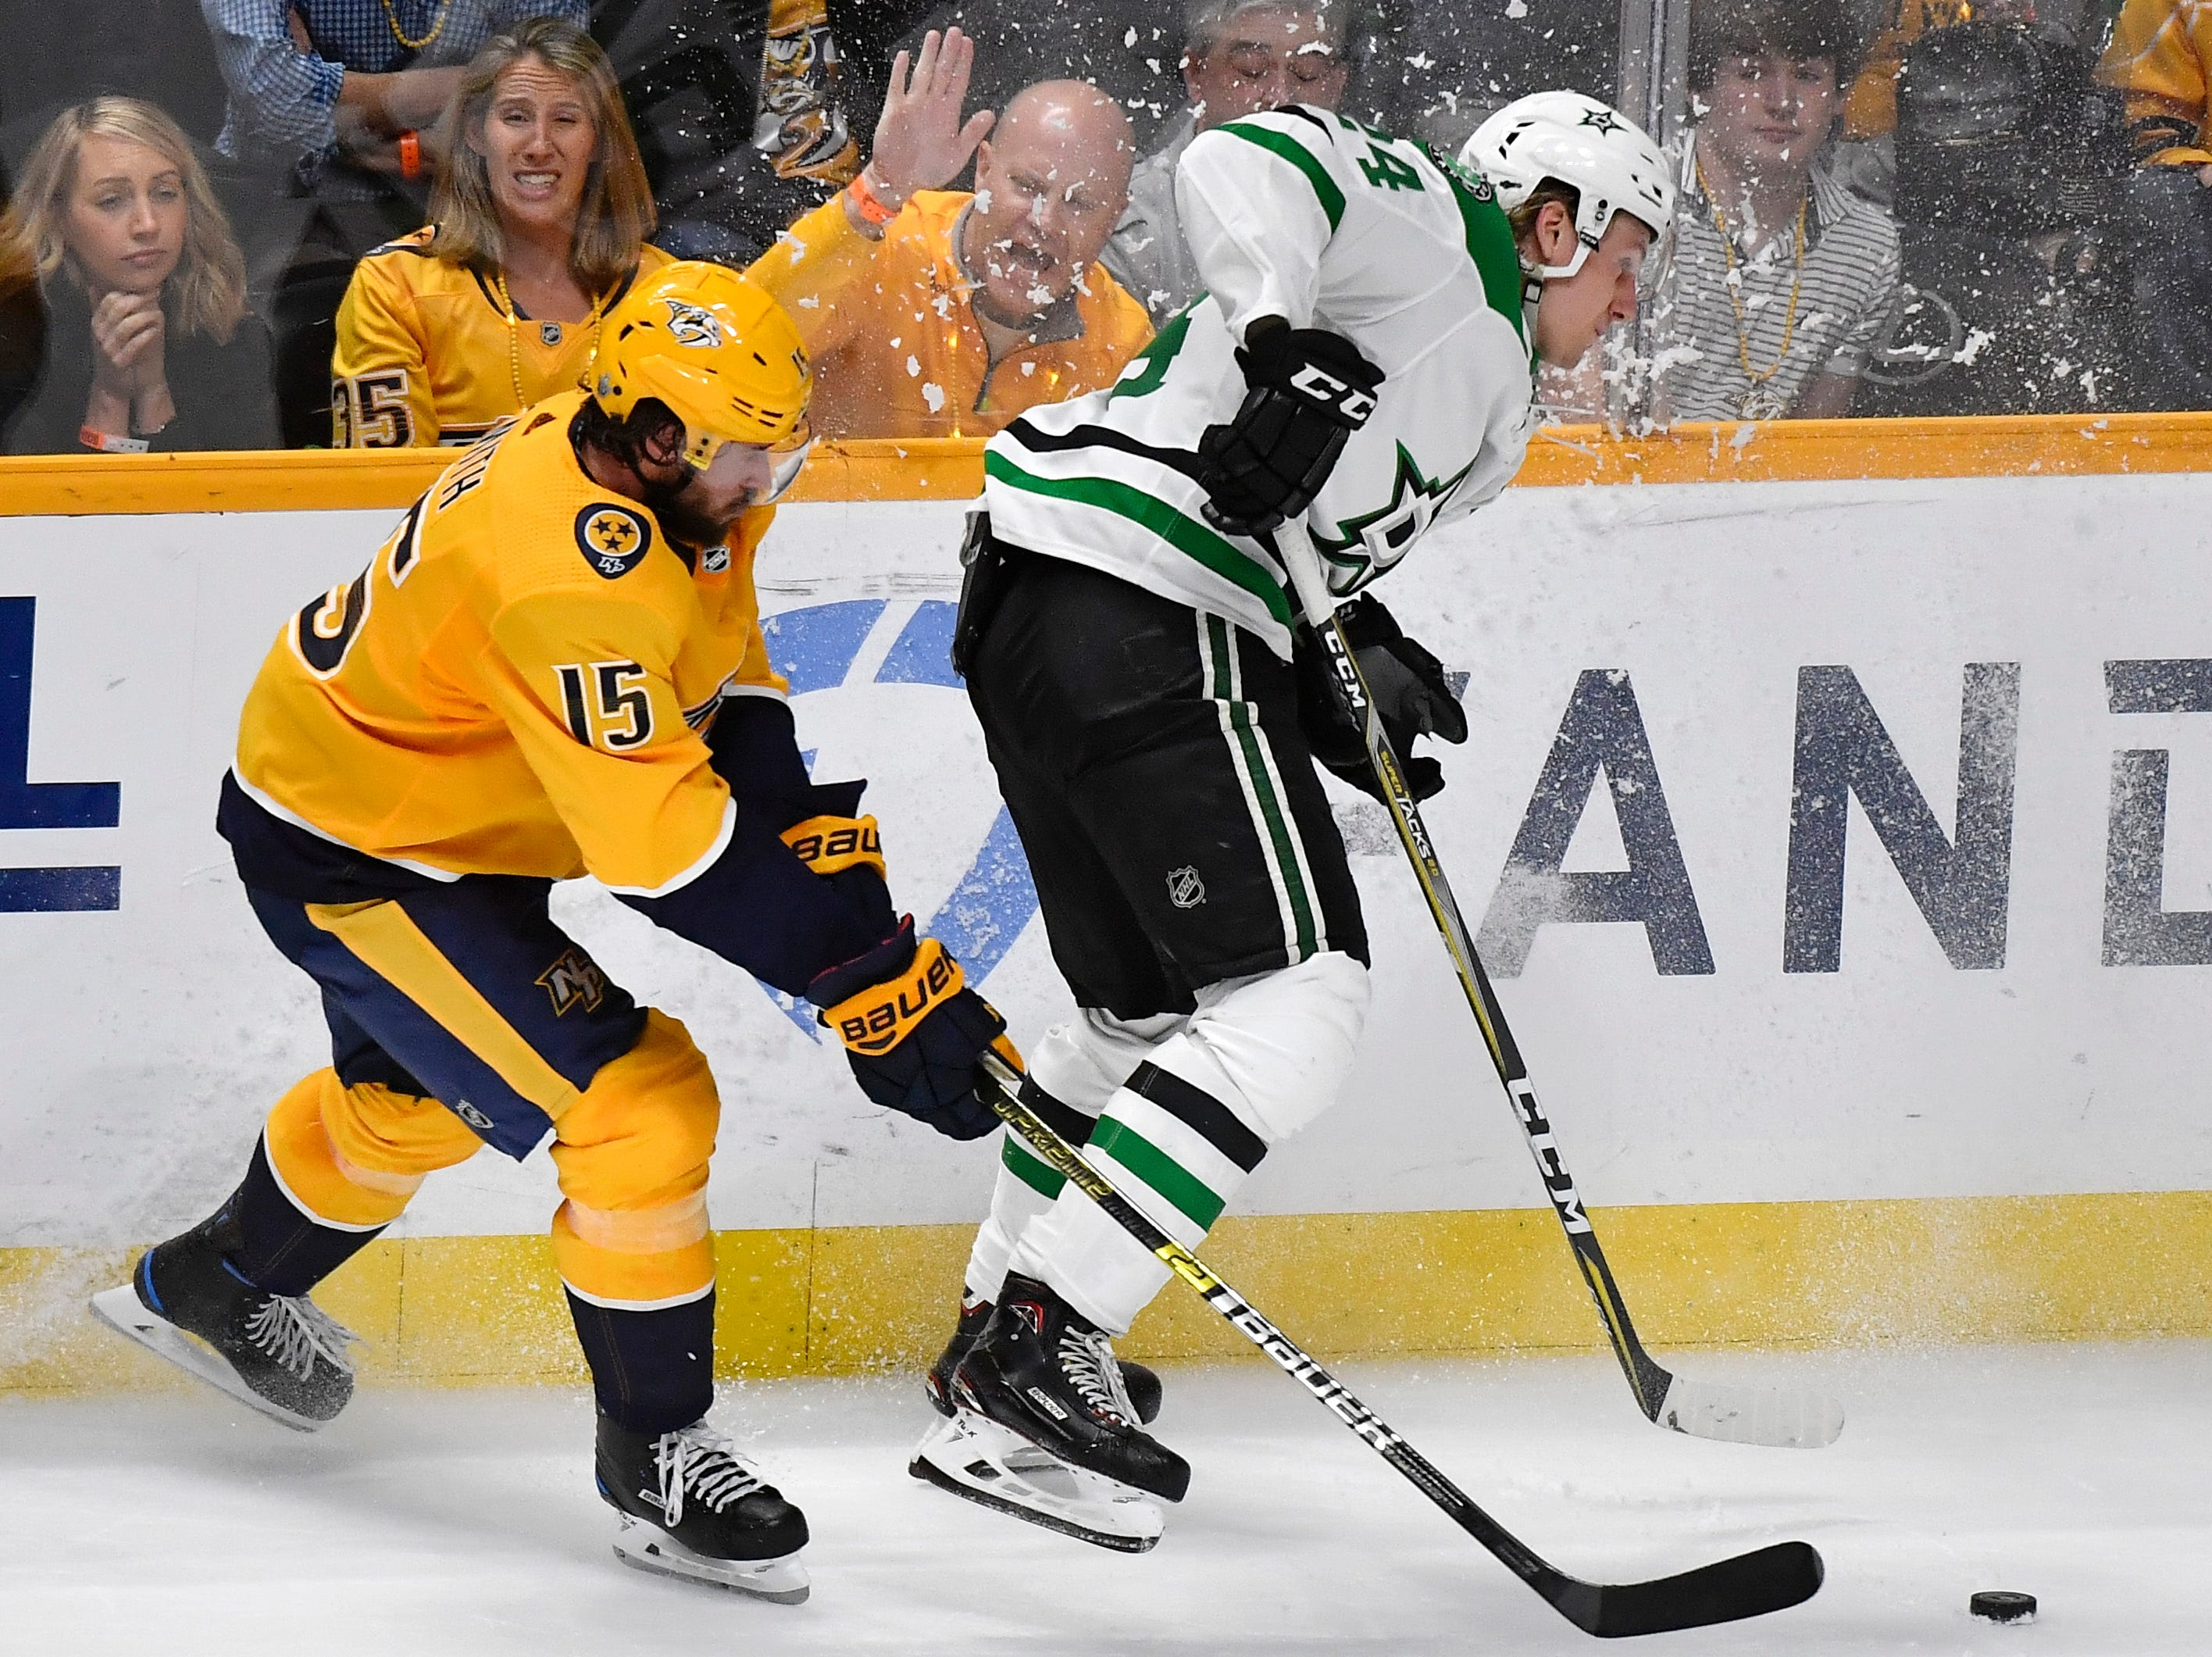 Nashville Predators right wing Craig Smith (15) and Dallas Stars left wing Roope Hintz (24) battle along the boards during the third period of the divisional semifinal game at Bridgestone Arena in Nashville, Tenn., Saturday, April 13, 2019.